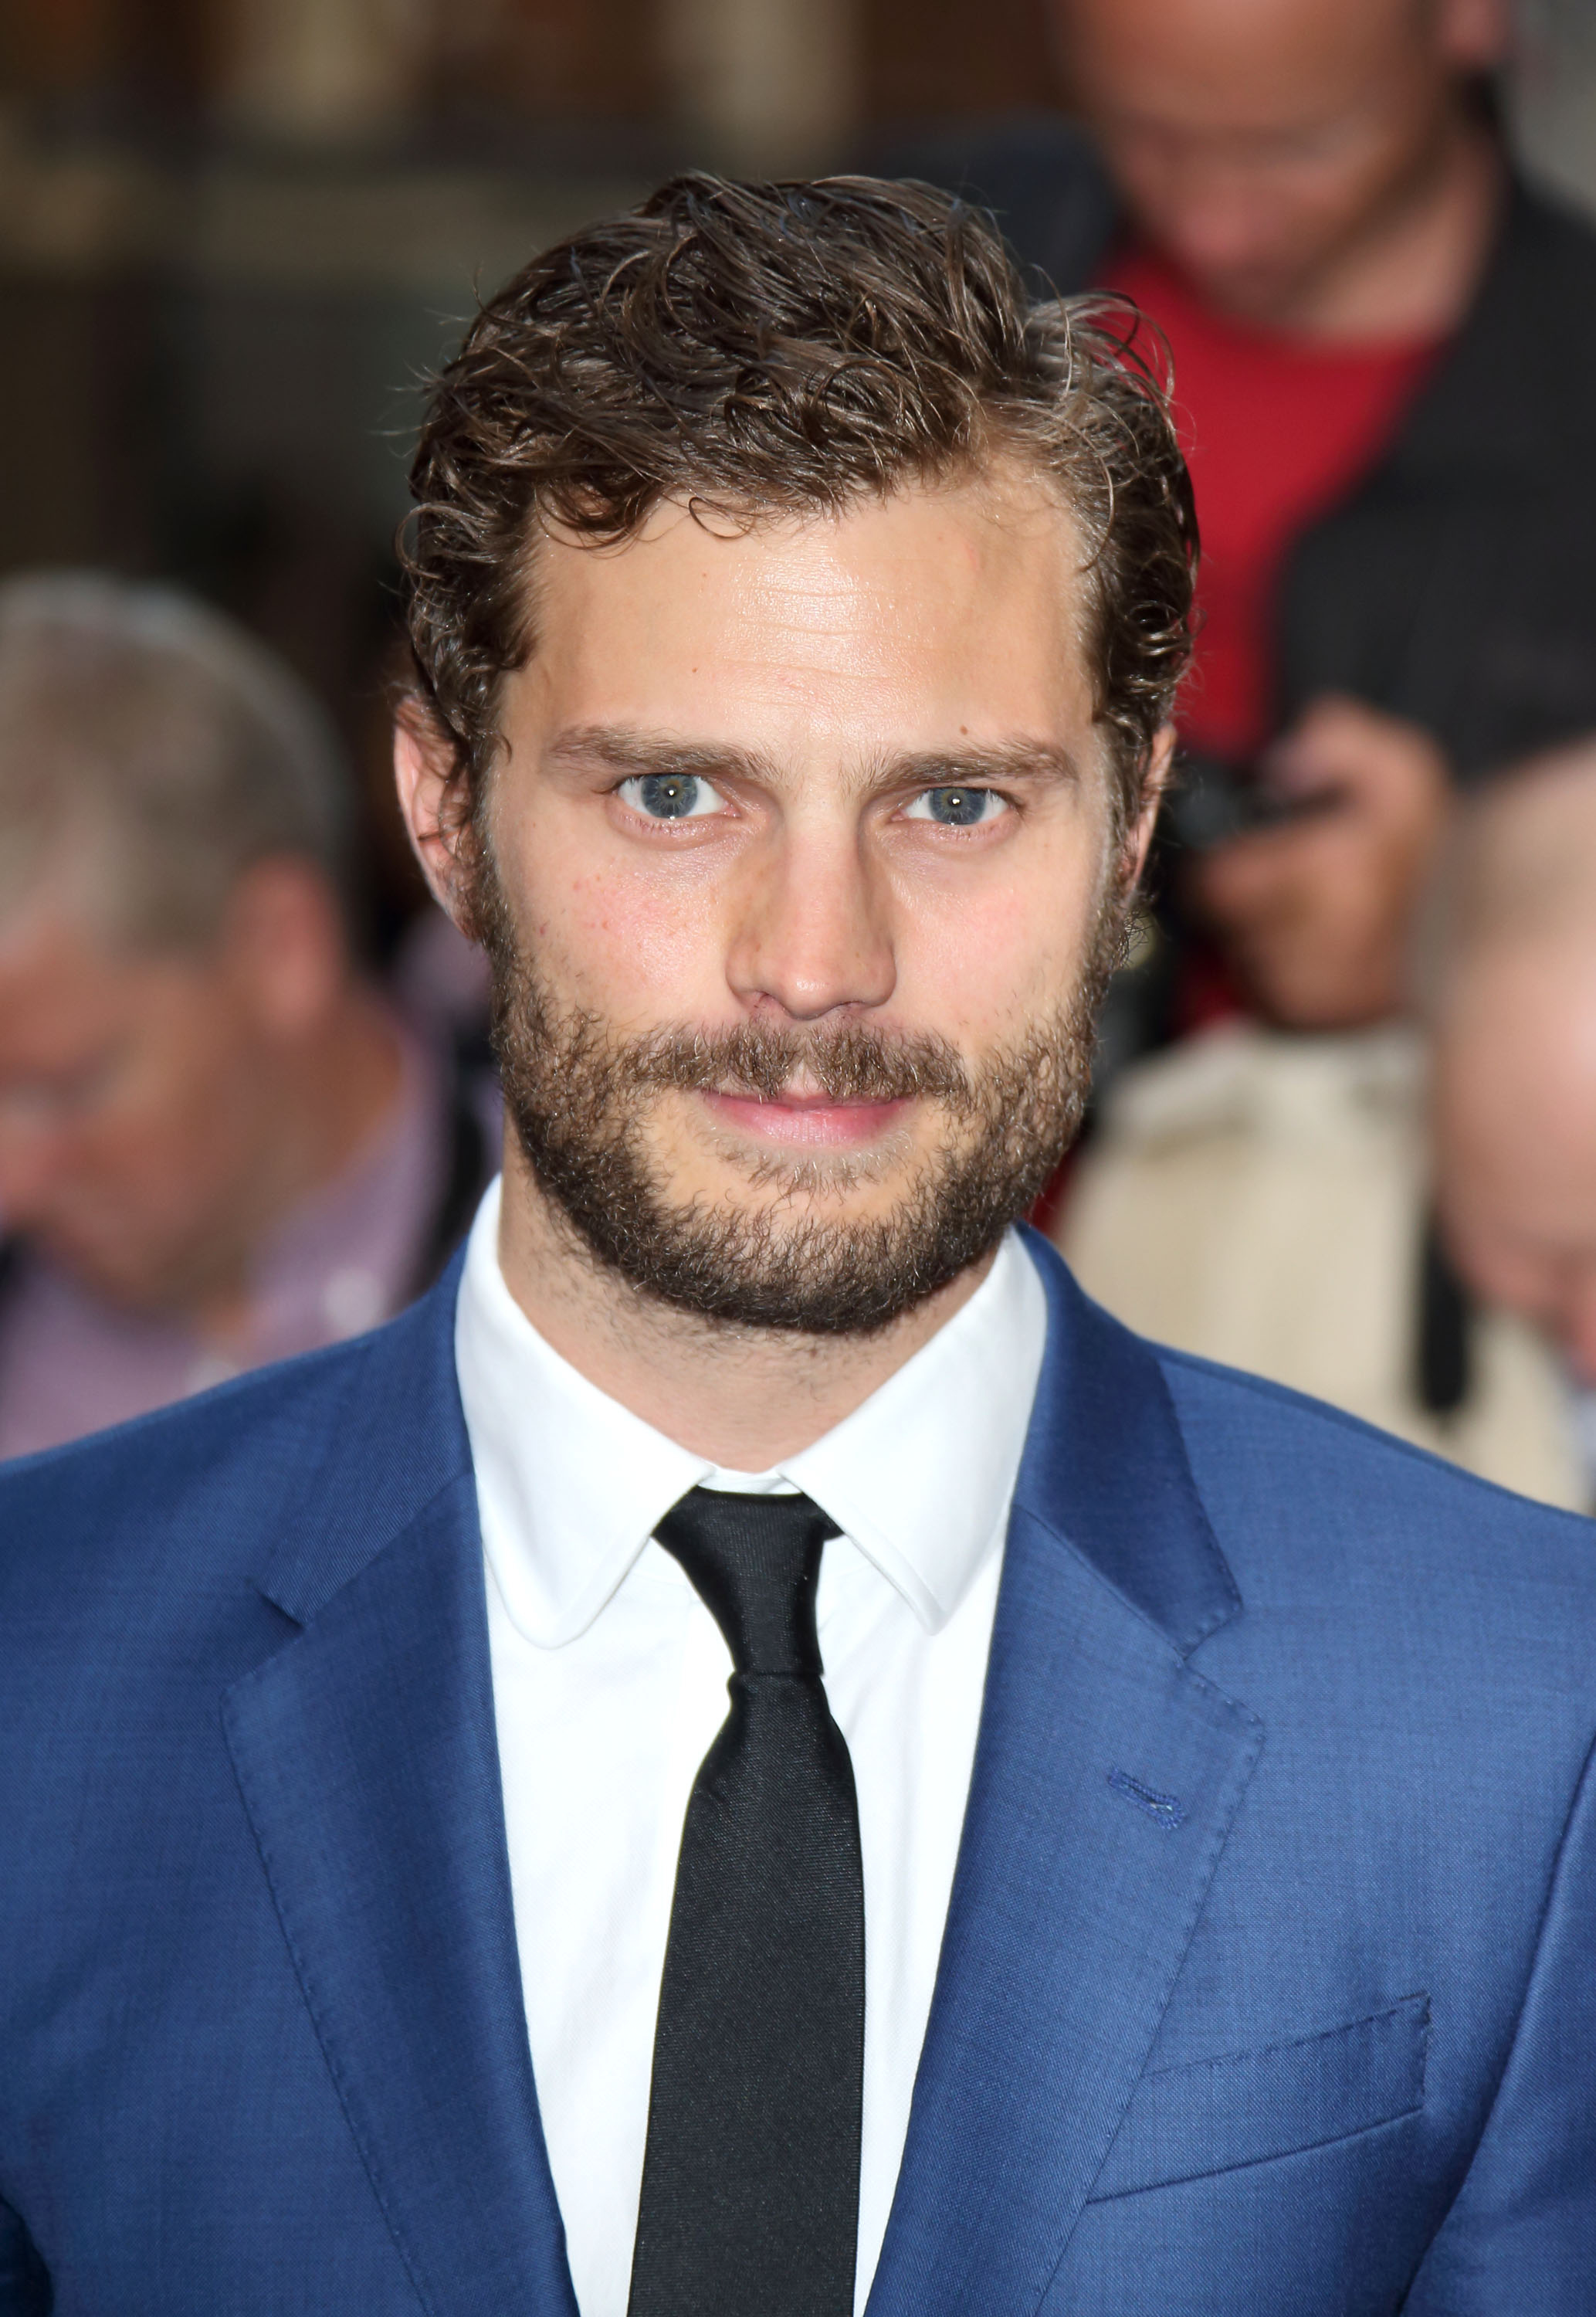 Jamie Dornan attends the GQ Men of the Year awards at The Royal Opera House on September 2, 2014 in London, England.